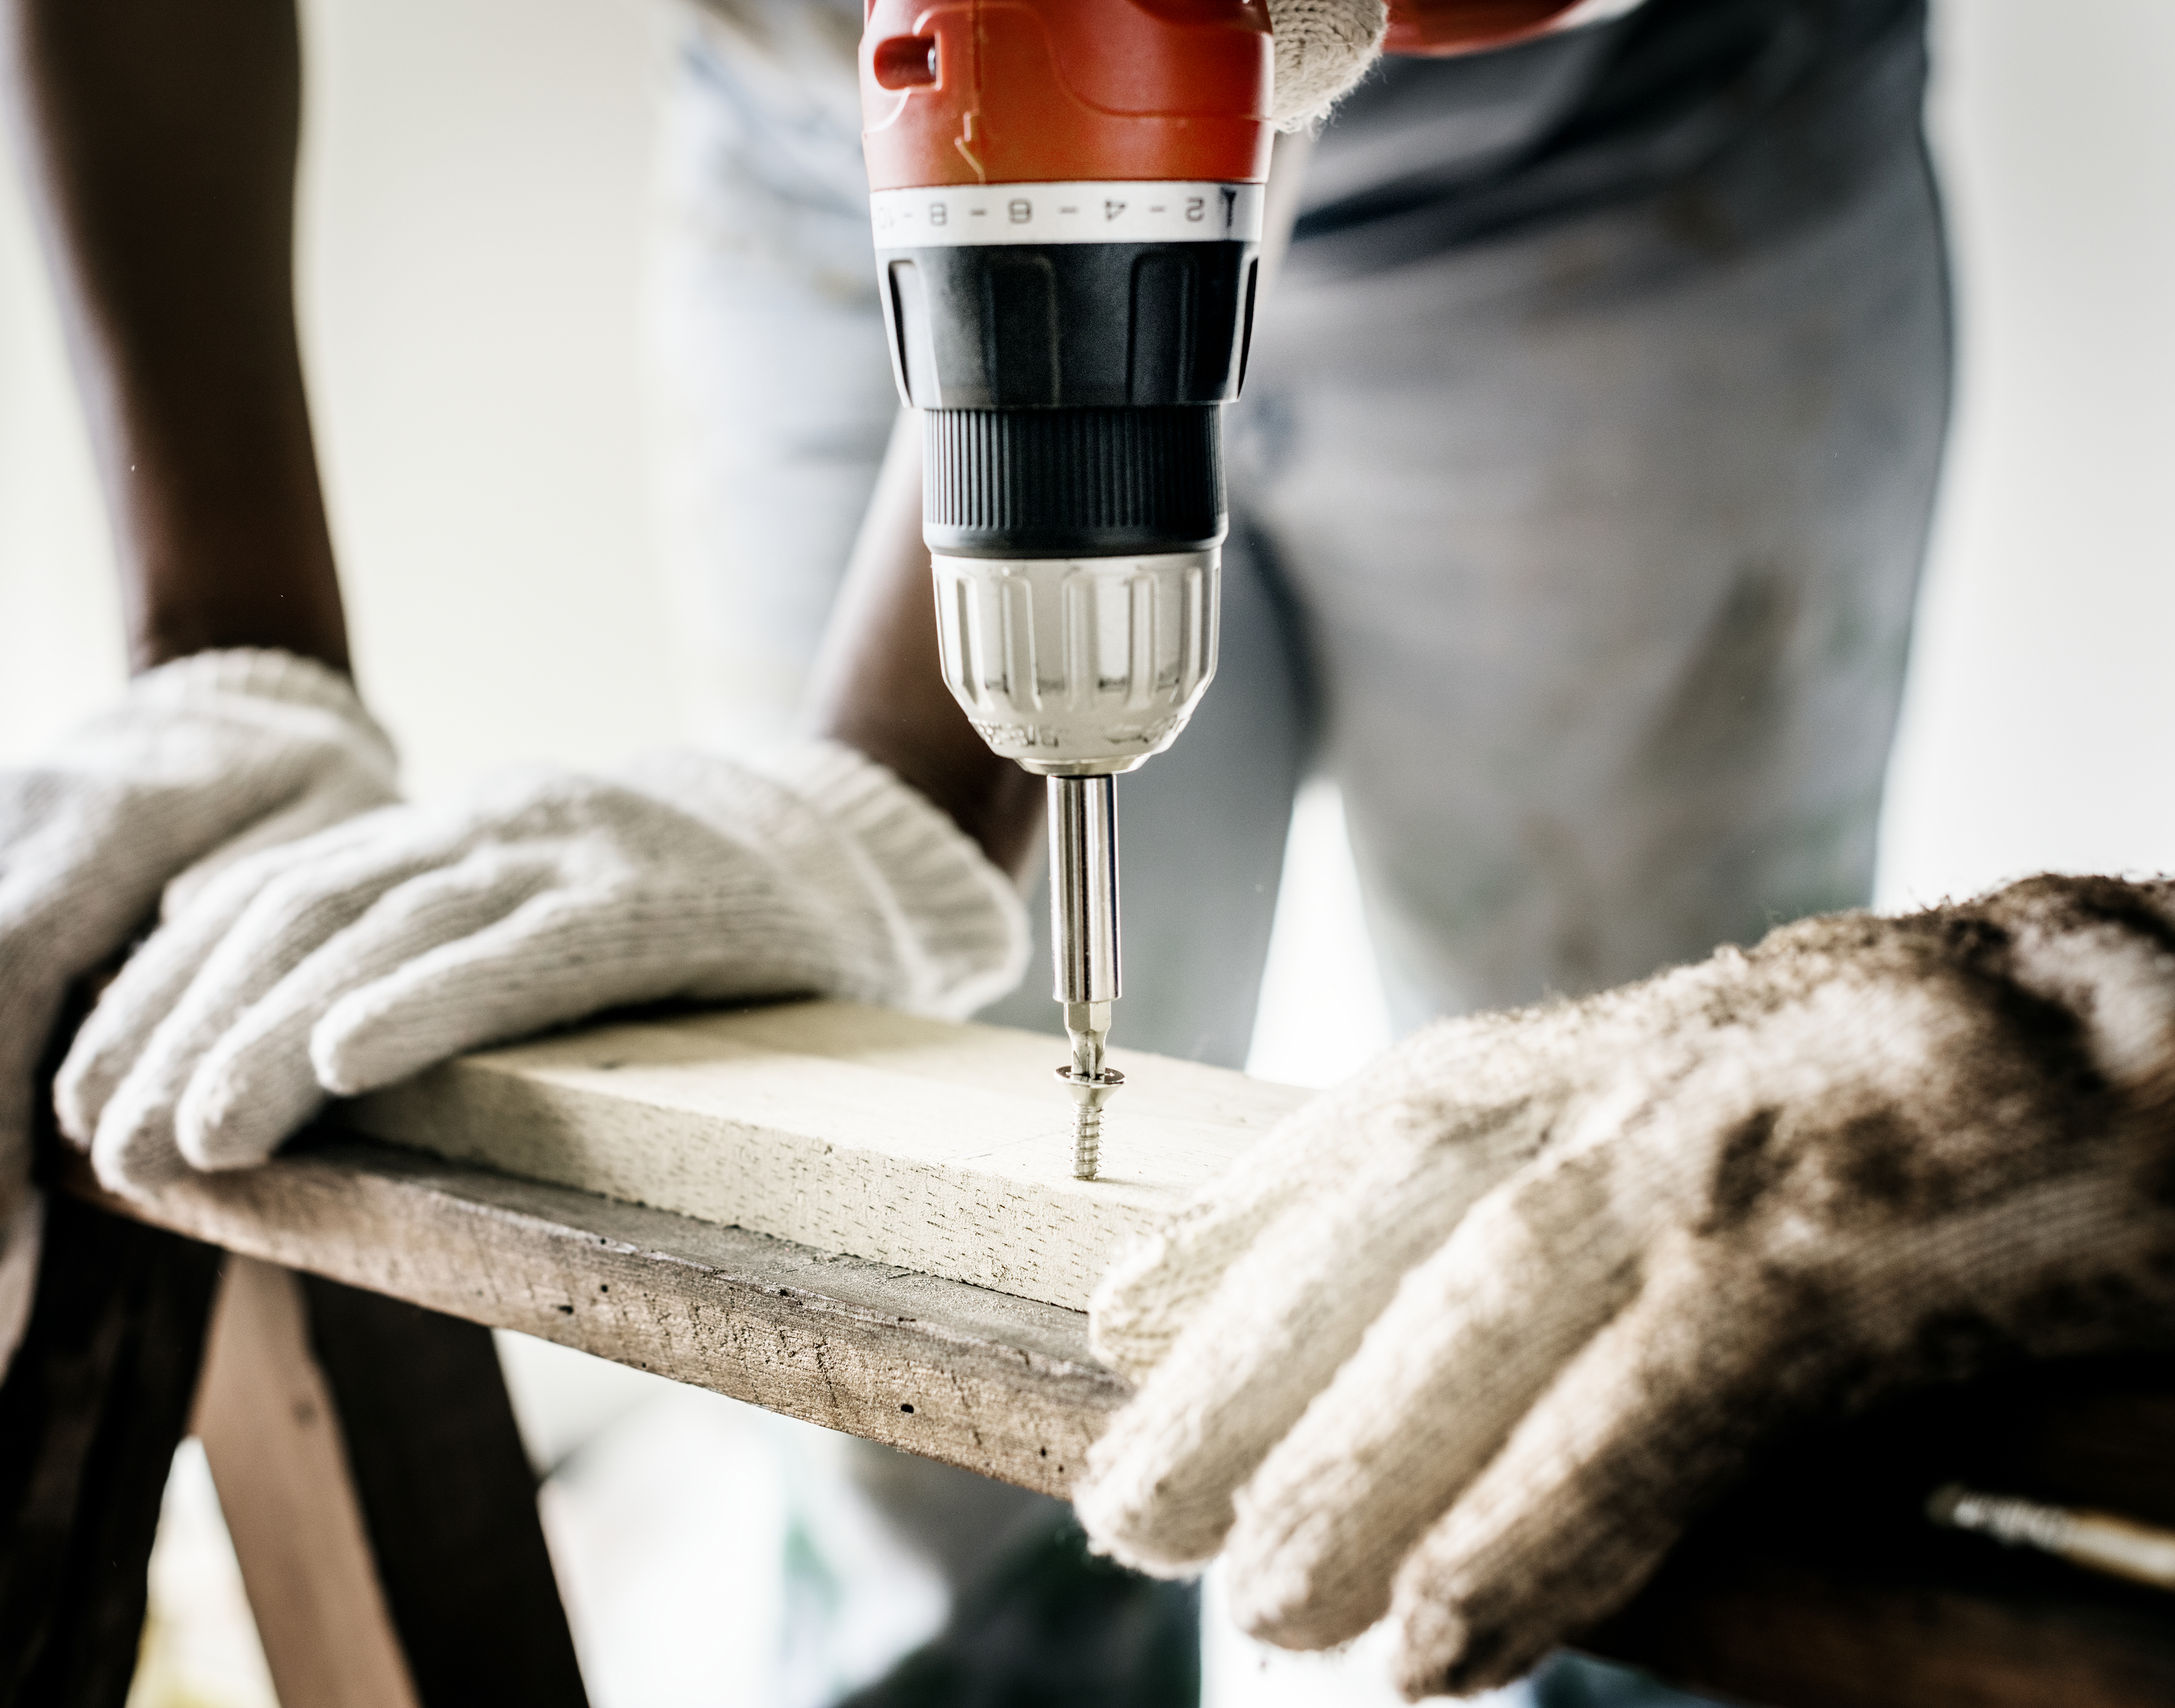 Home improvements that add value to your home